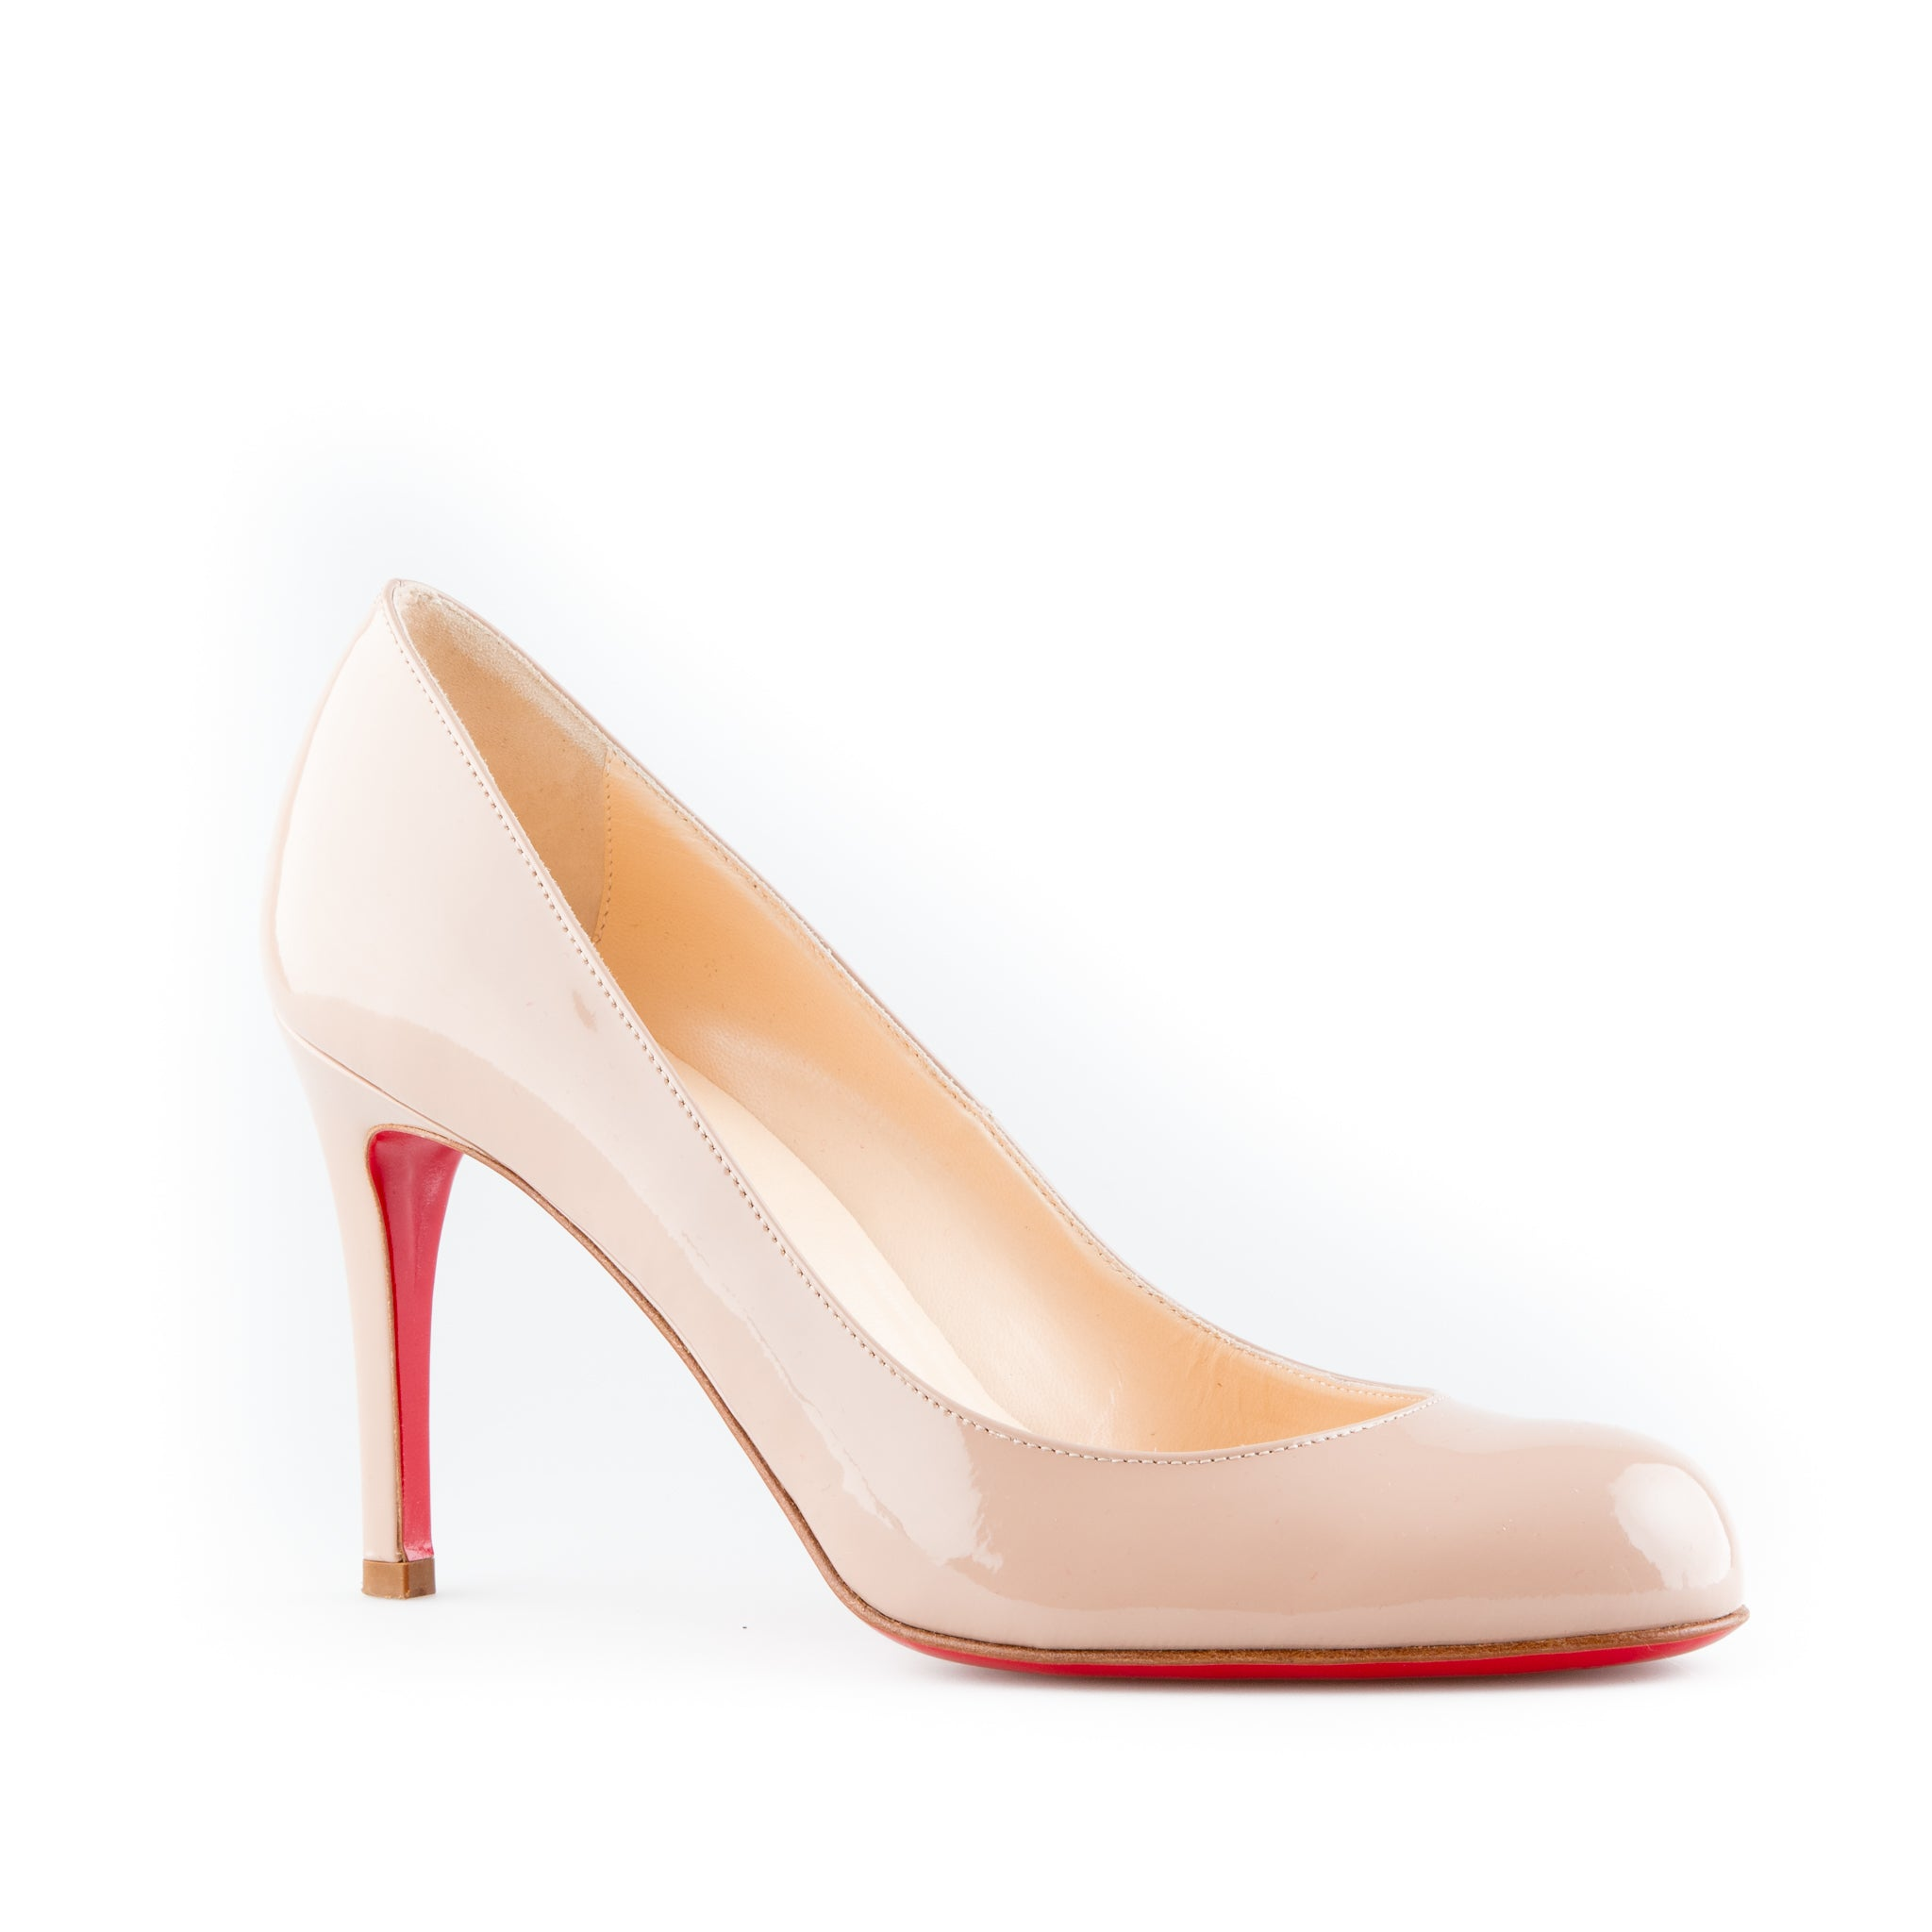 best website 35e8a ebcbd Christian Louboutin 'Simple Pump' Patent Leather Pumps